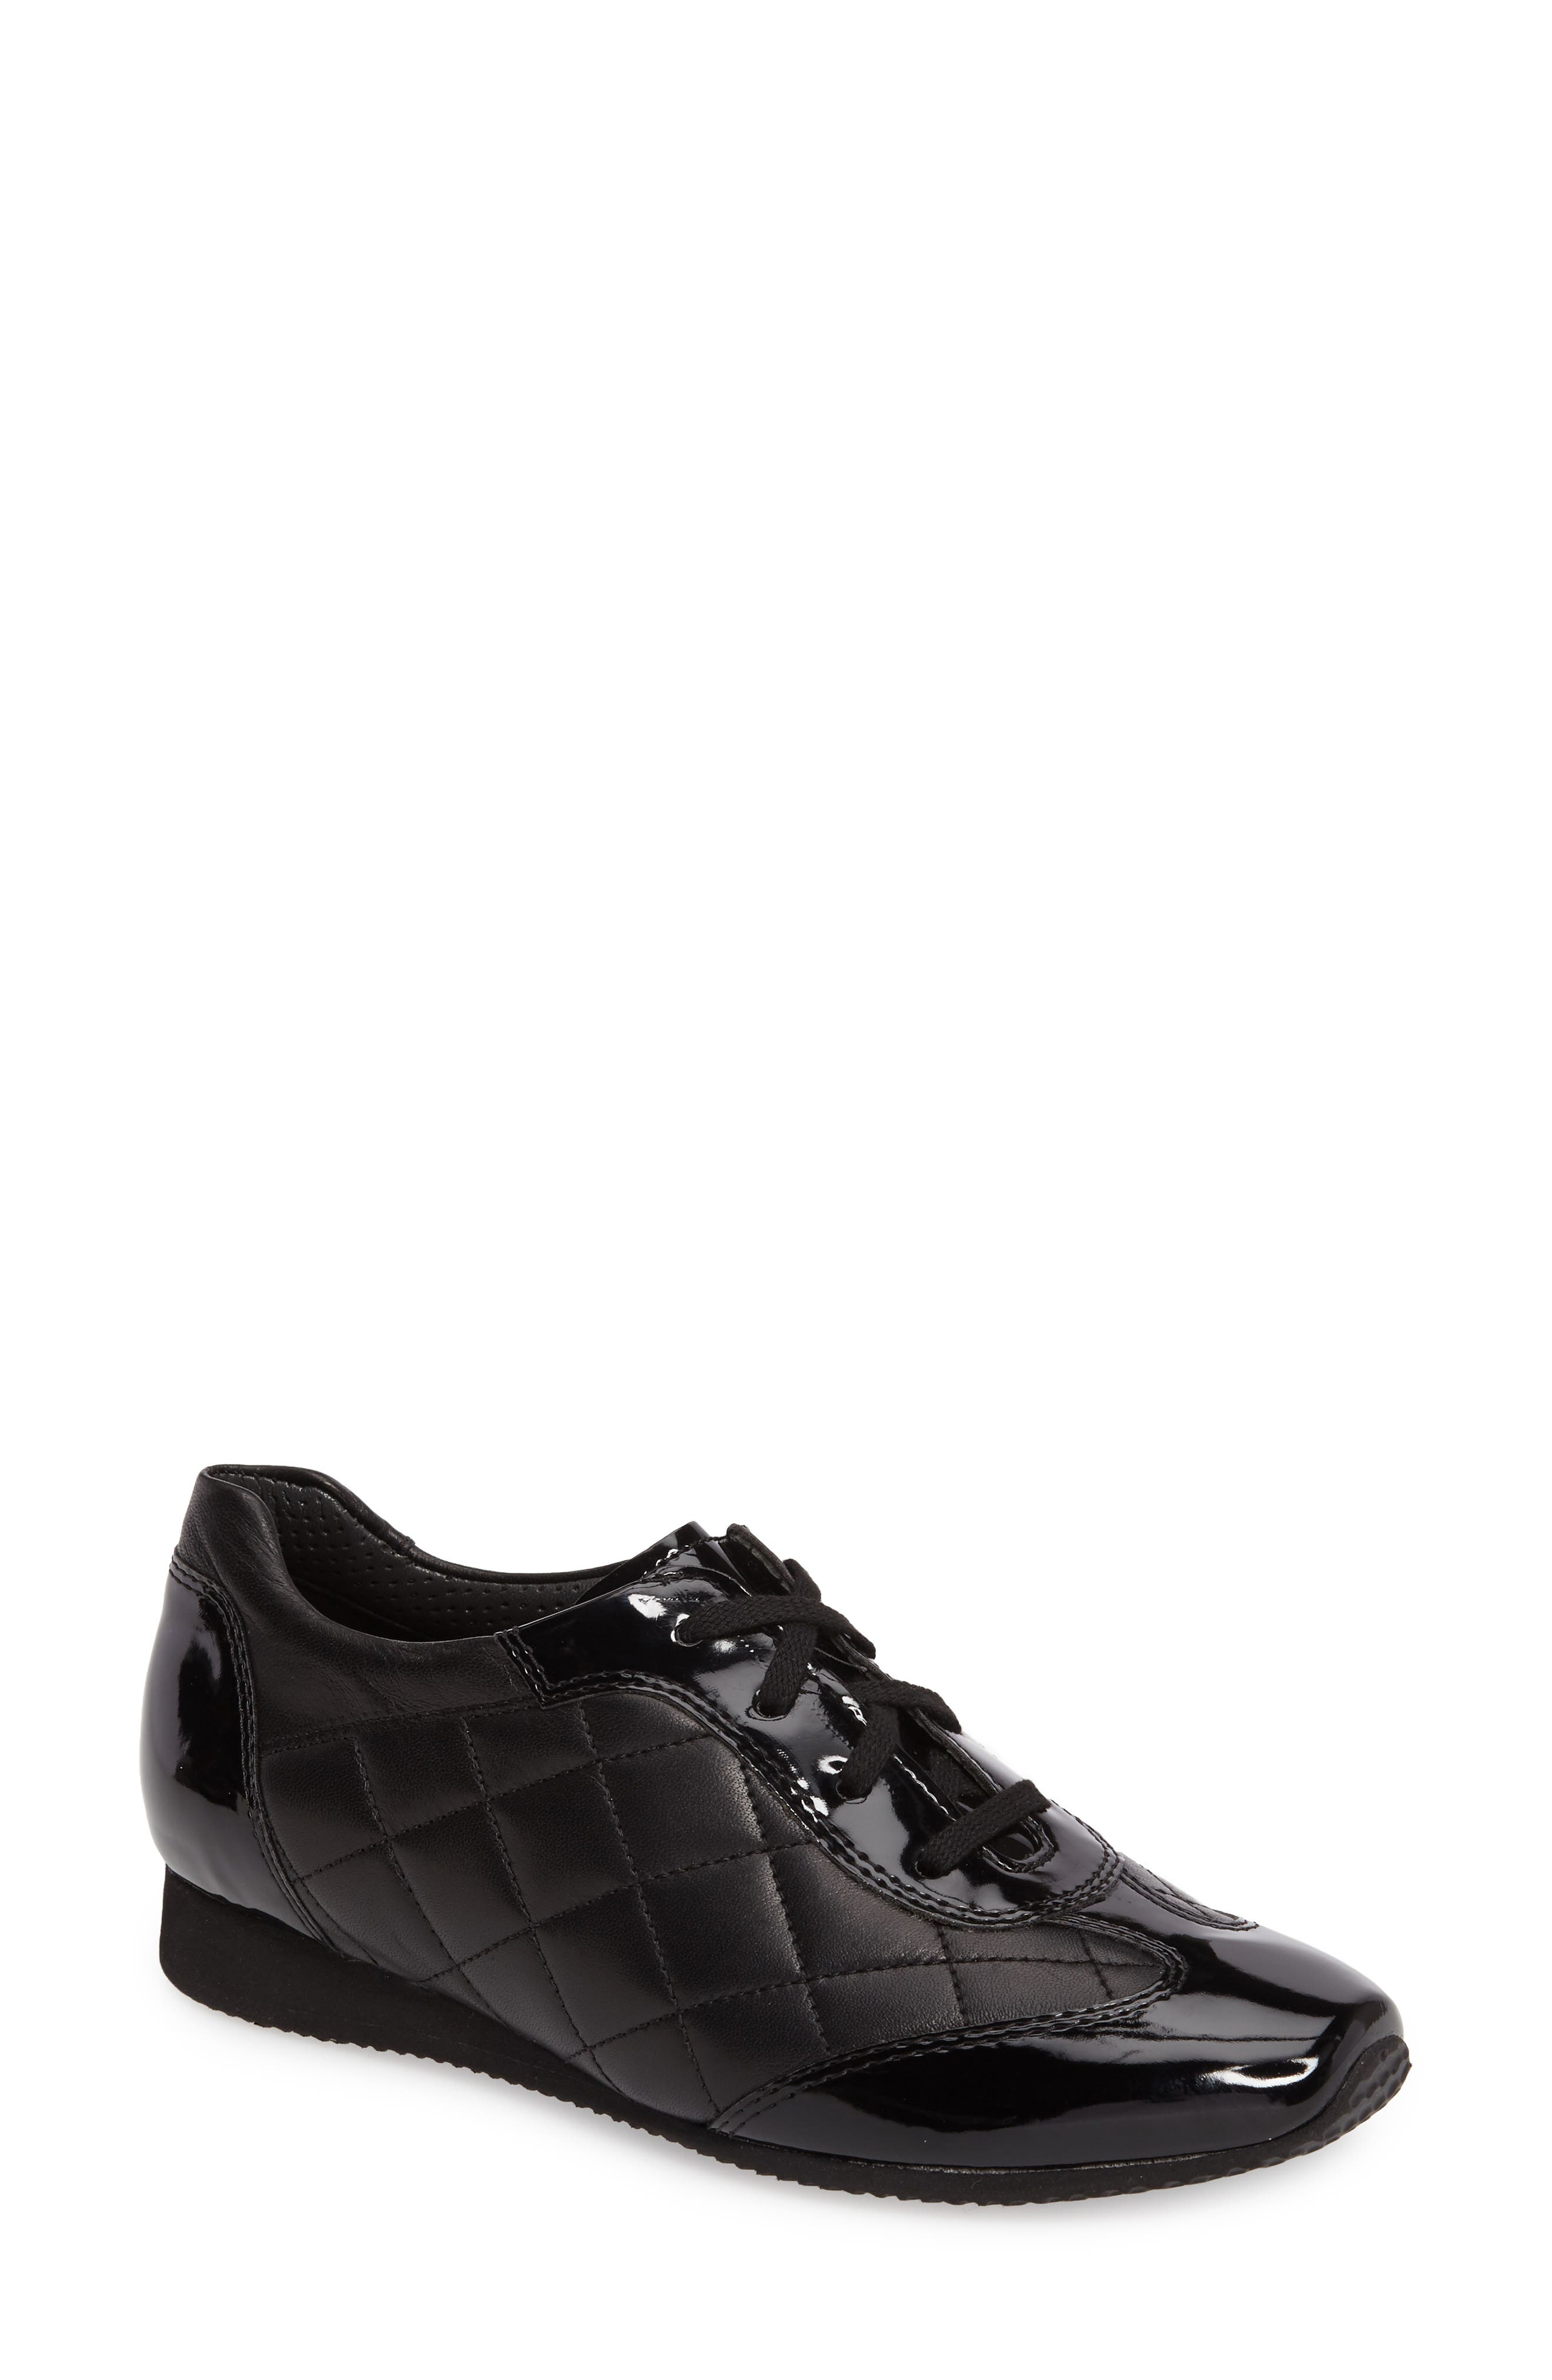 Ilana Sneaker,                             Main thumbnail 1, color,                             BLACK QUILTED LEATHER